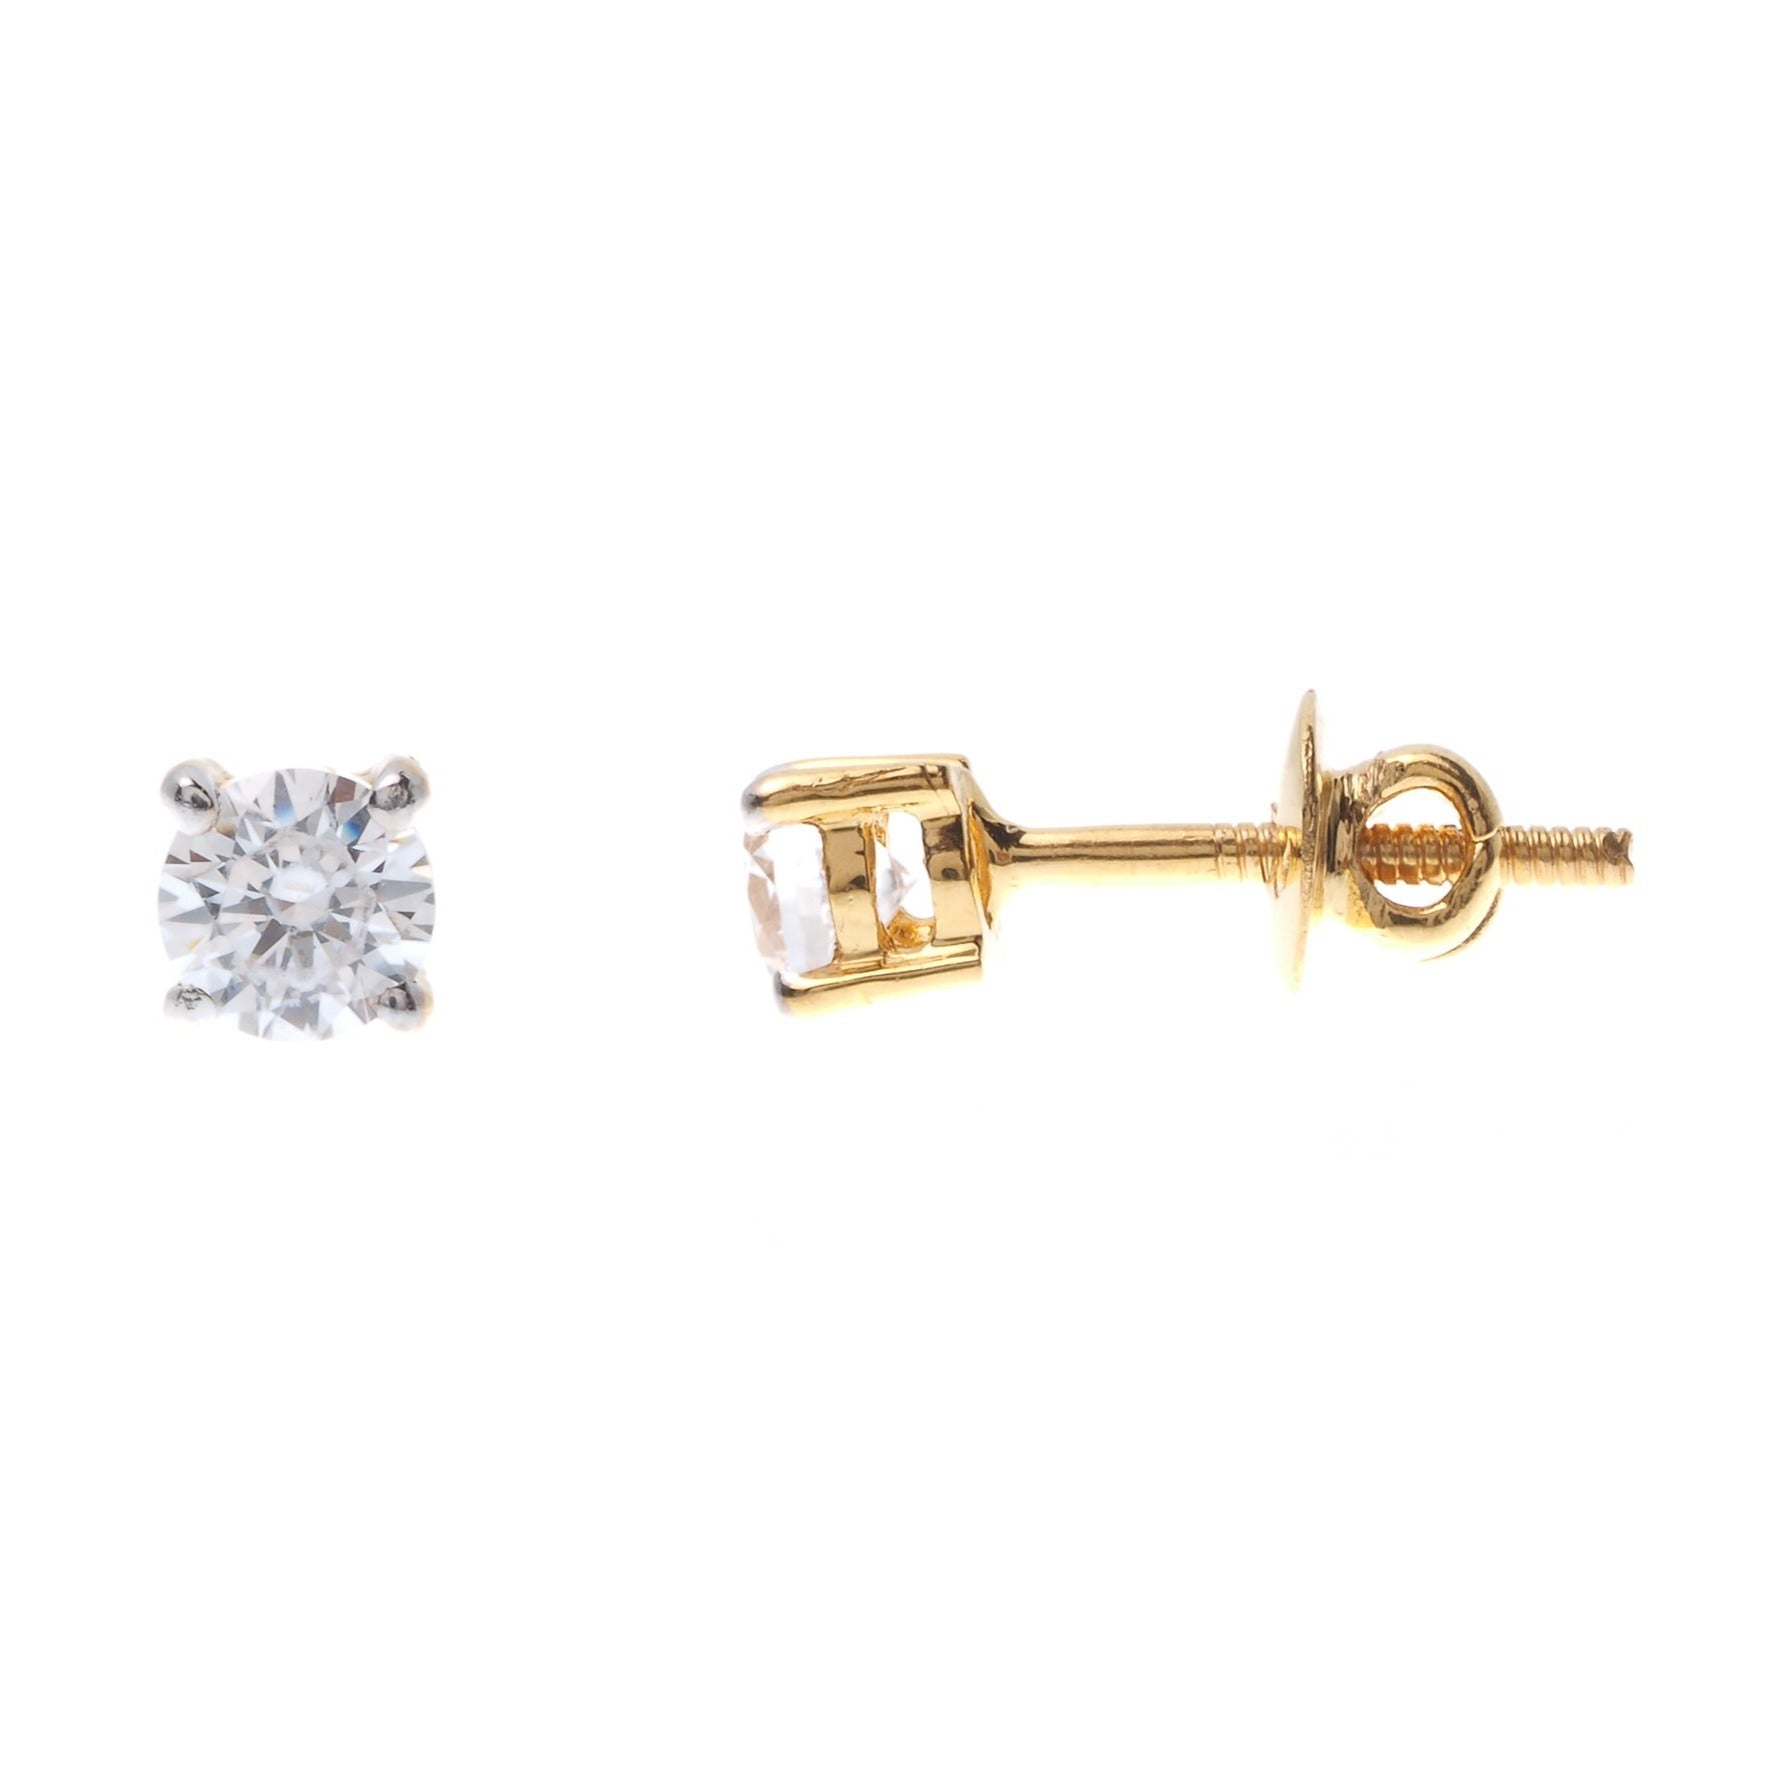 22ct Gold Swarovski Zirconia Stud Earrings (1.9g) ET12132